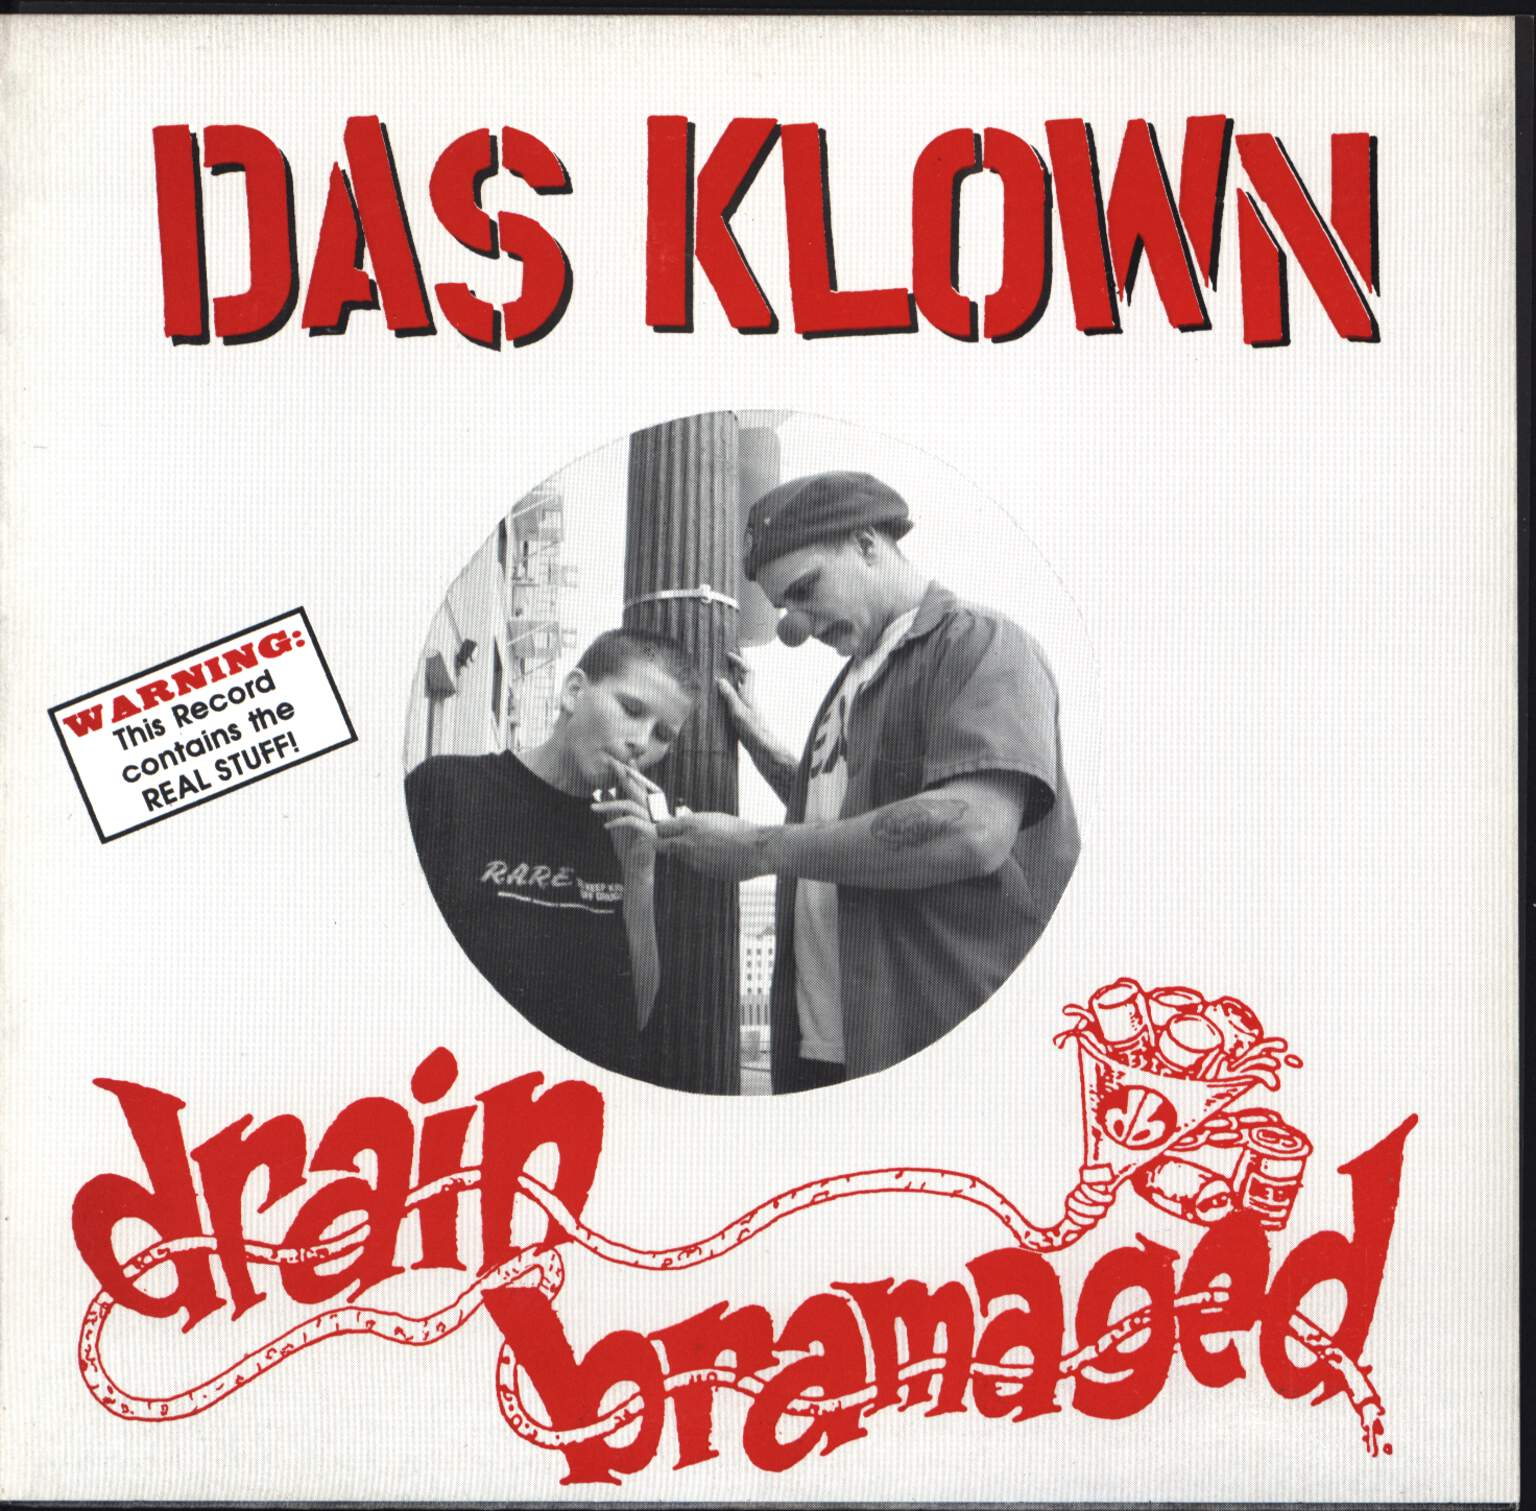 "Das Klown: Das Klown / Drain Bramaged, 7"" Single (Vinyl)"